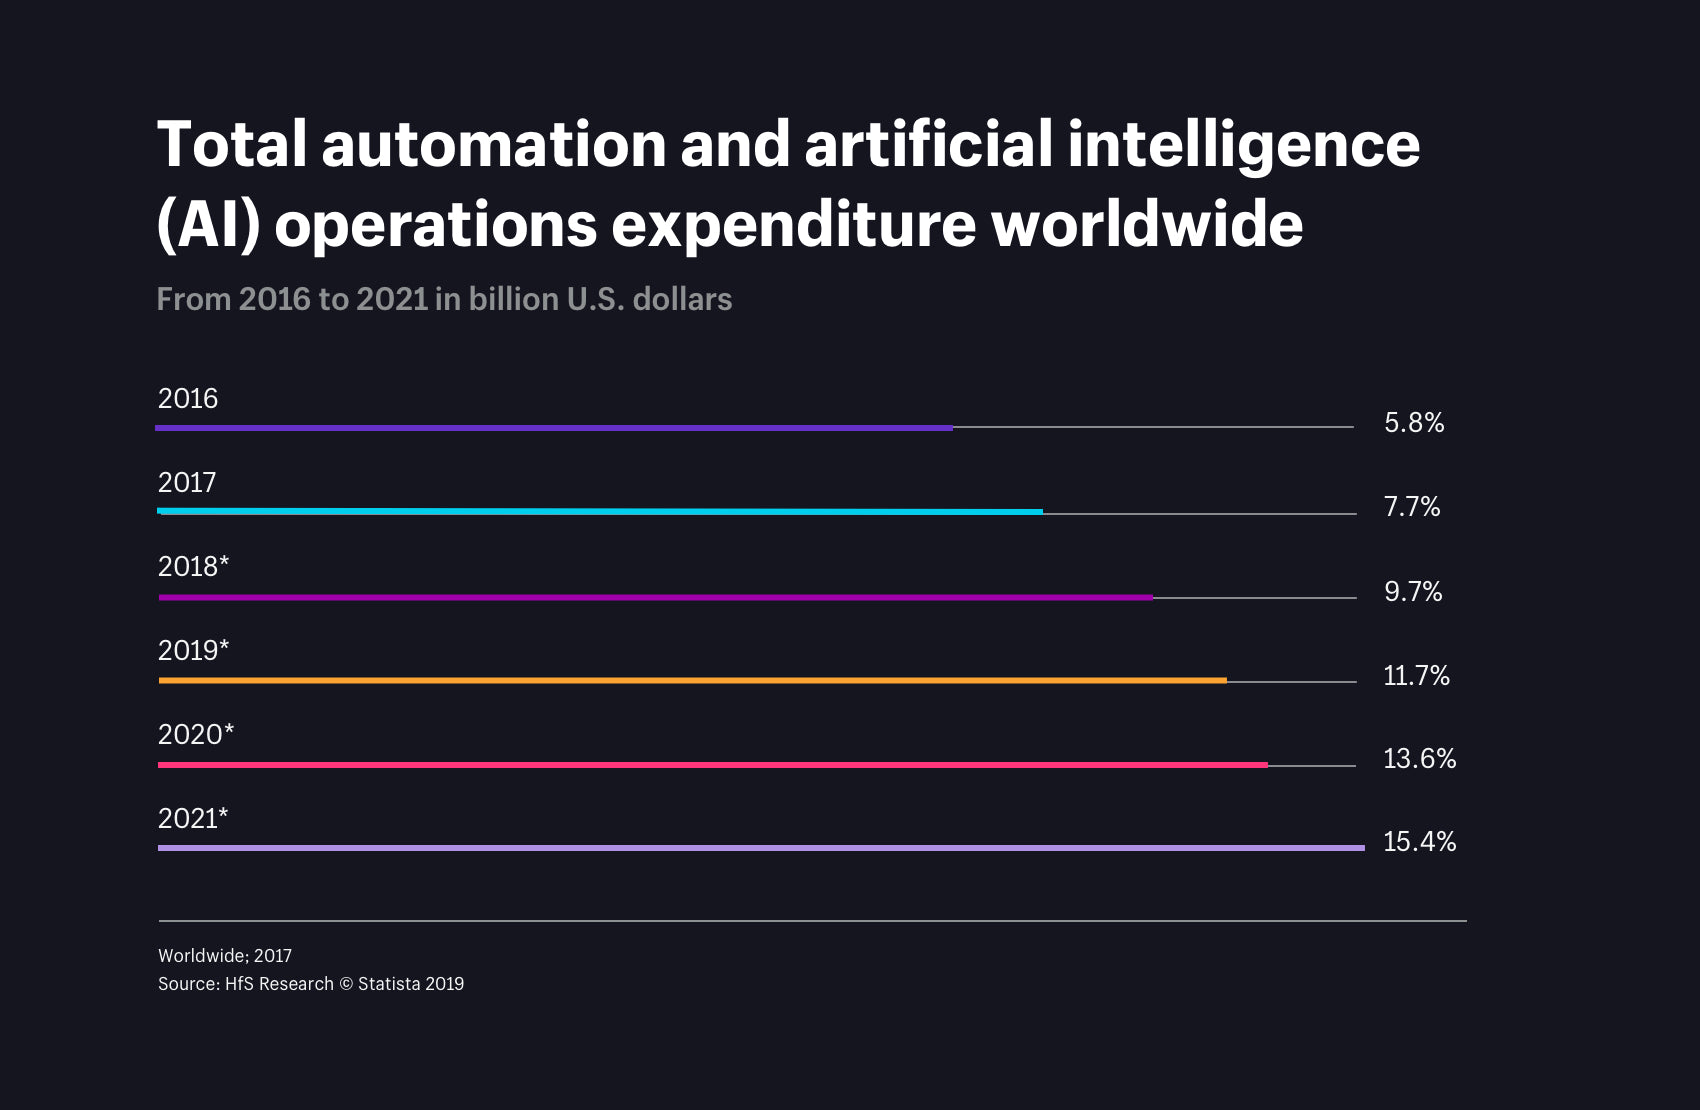 total automation and artificial intelligence operations expenditure worldwide